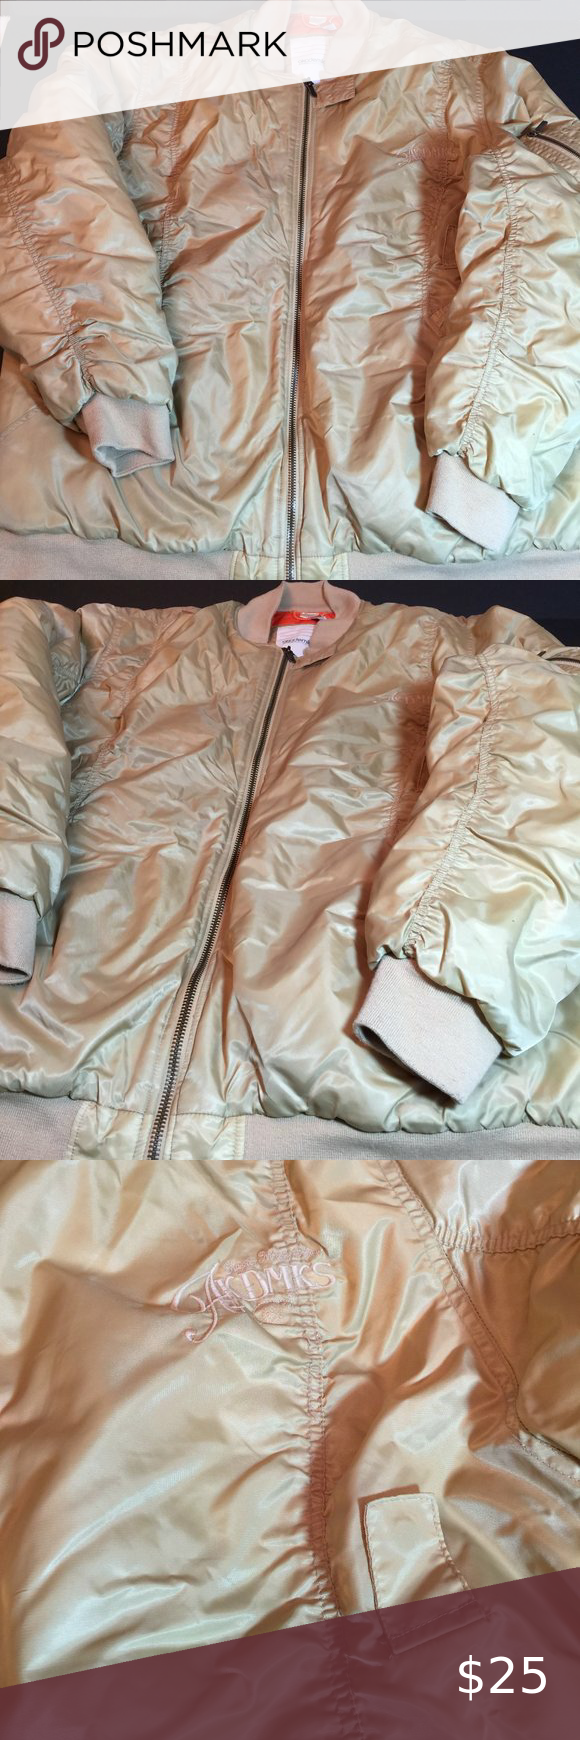 Akademiks Tan Gold Nordic Program Puffer Coat 4XL Akademiks Tan Gold Nordic Program Puffer Coat 4XL  See last photo of discoloration near zipper; I only noticed this under direct photography lighting.  See all 8 photos for condition; photos serve as additional description.  All noticed flaws will be mentioned.  Offers are welcome; bundle with other items for best price.   Same or next business day shipping.  Cat-loving, non-smoking home.  6RJ61720:8523-927:C1.5  men coats jackets puff mens Akade